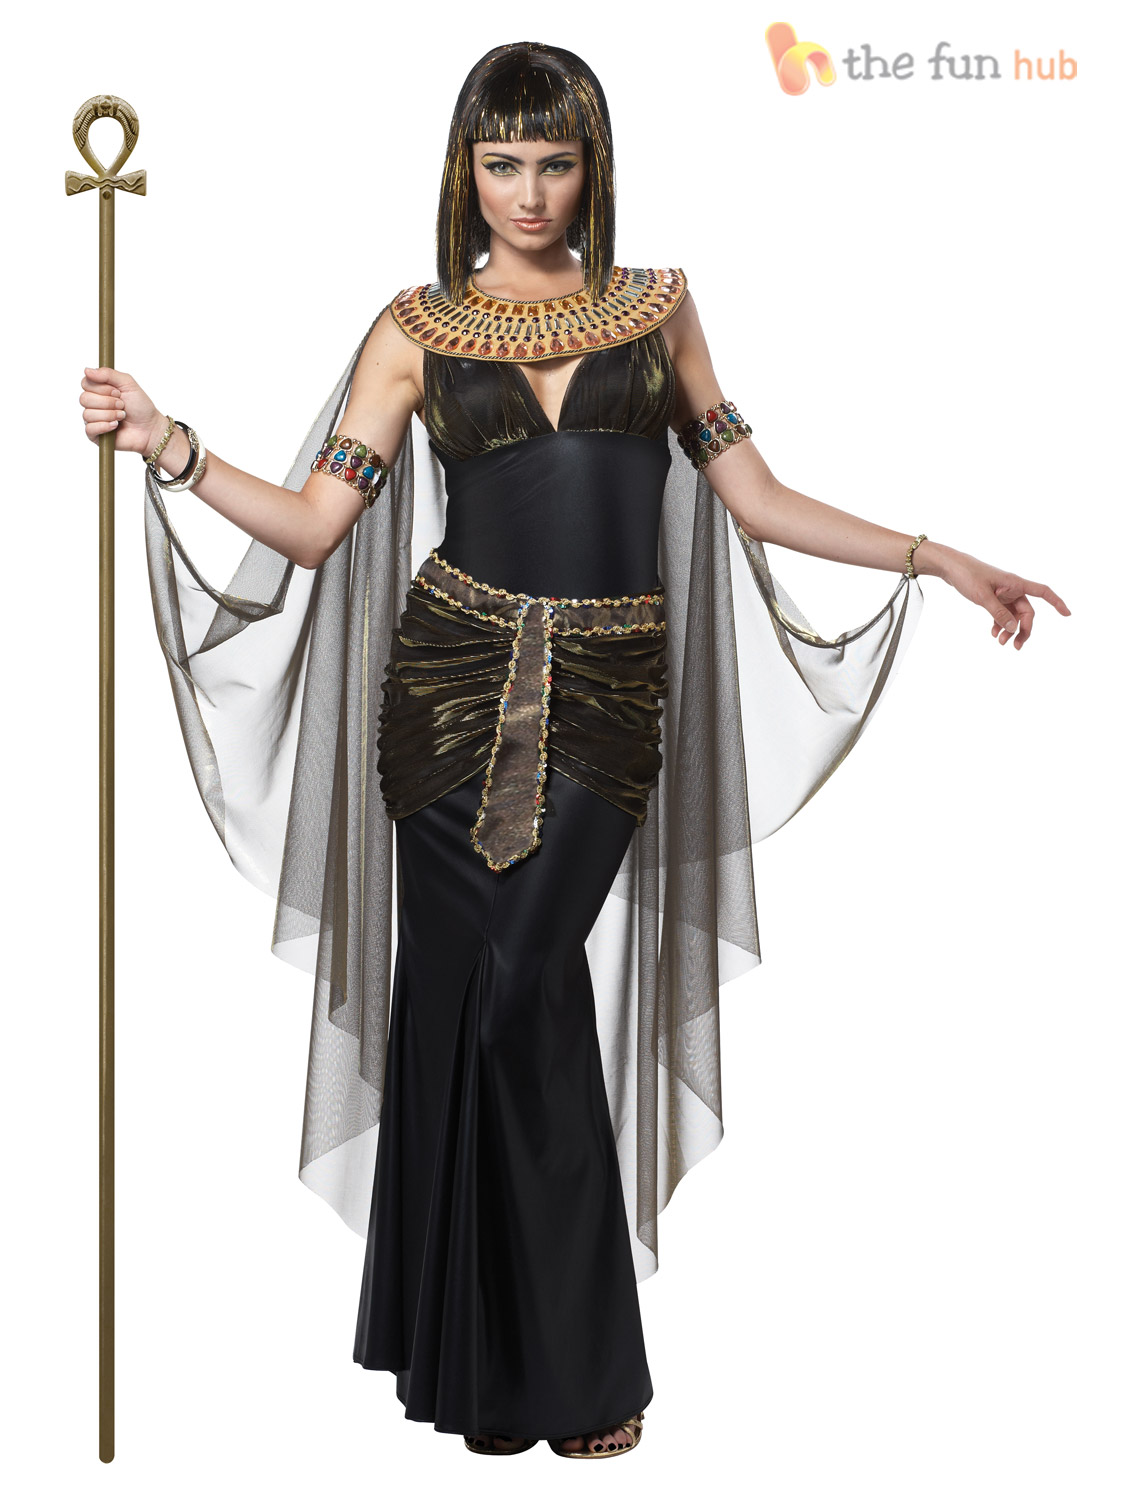 Original The Toga Costumes For Women Get Better With The Kind Of  Pharaohs Basically, Pharaoh Is A Title Given To The Ancient Egyptian Rulers Get Into The Toga Robe, Don Those Awesome Boots And Rule The Fancy Dress Party Just Like The